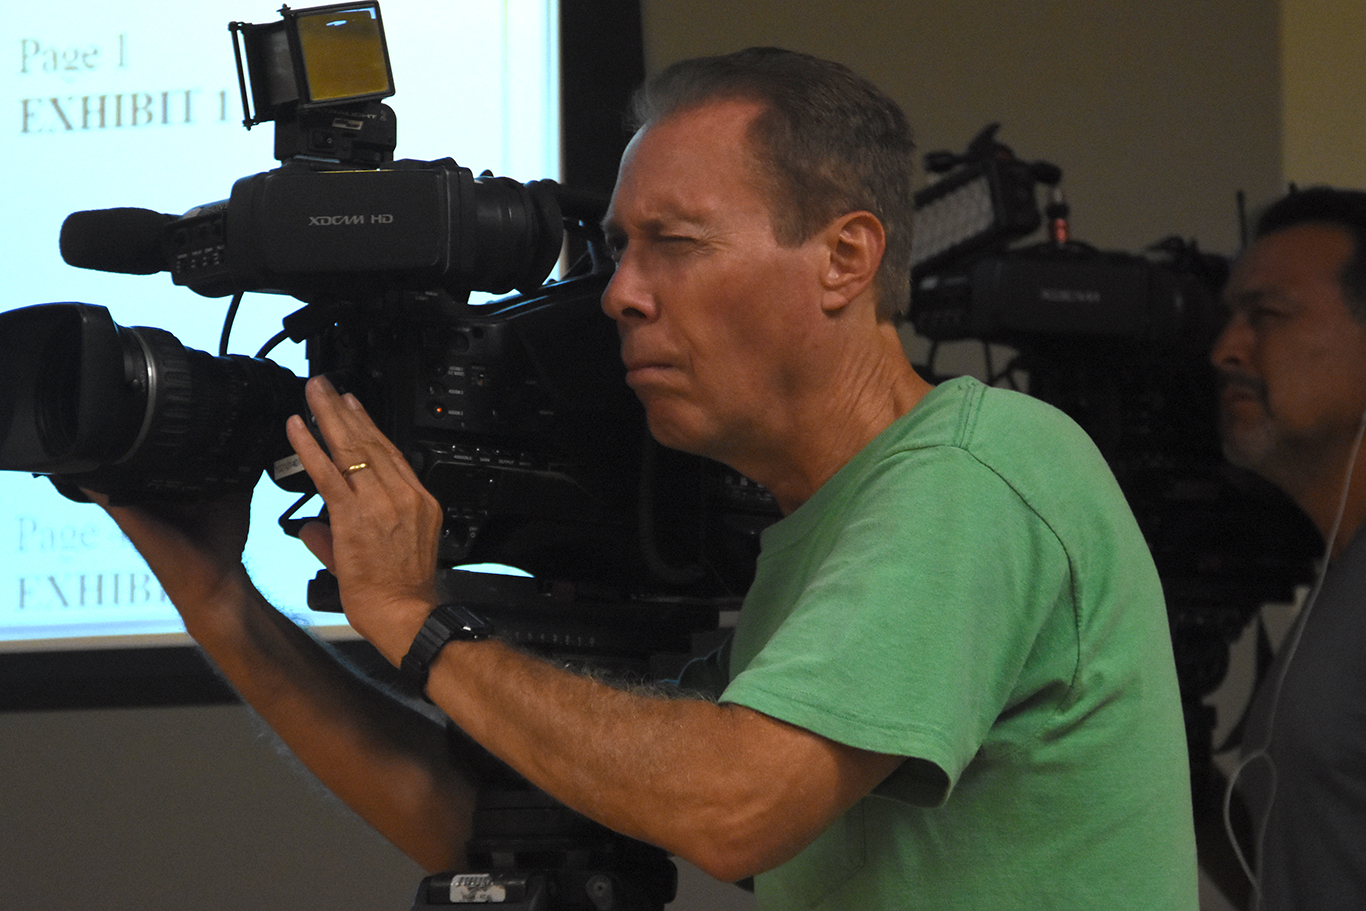 Many major news outlets, including KTLA and ABC were present at the 9/12 board meeting.